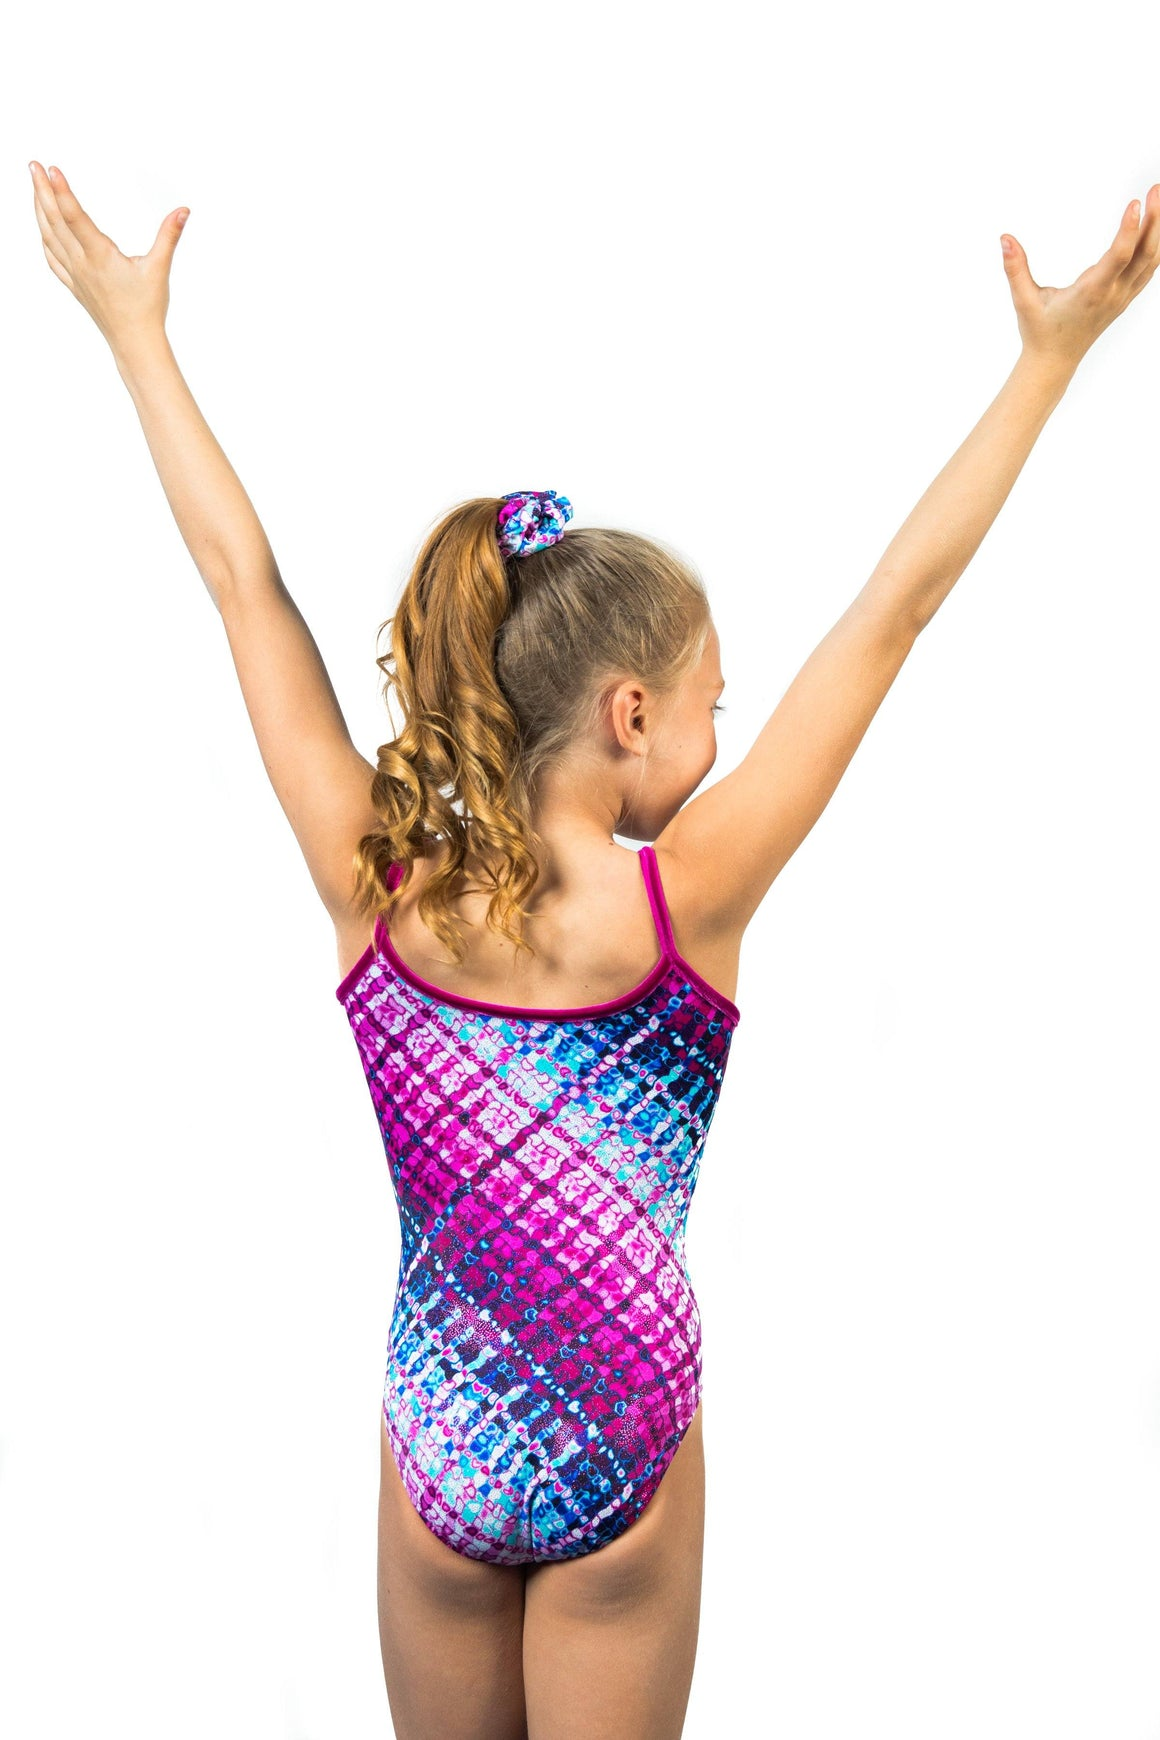 Empire, gymnastics, Rebecca's Mom Leotards, Leotard.com - image